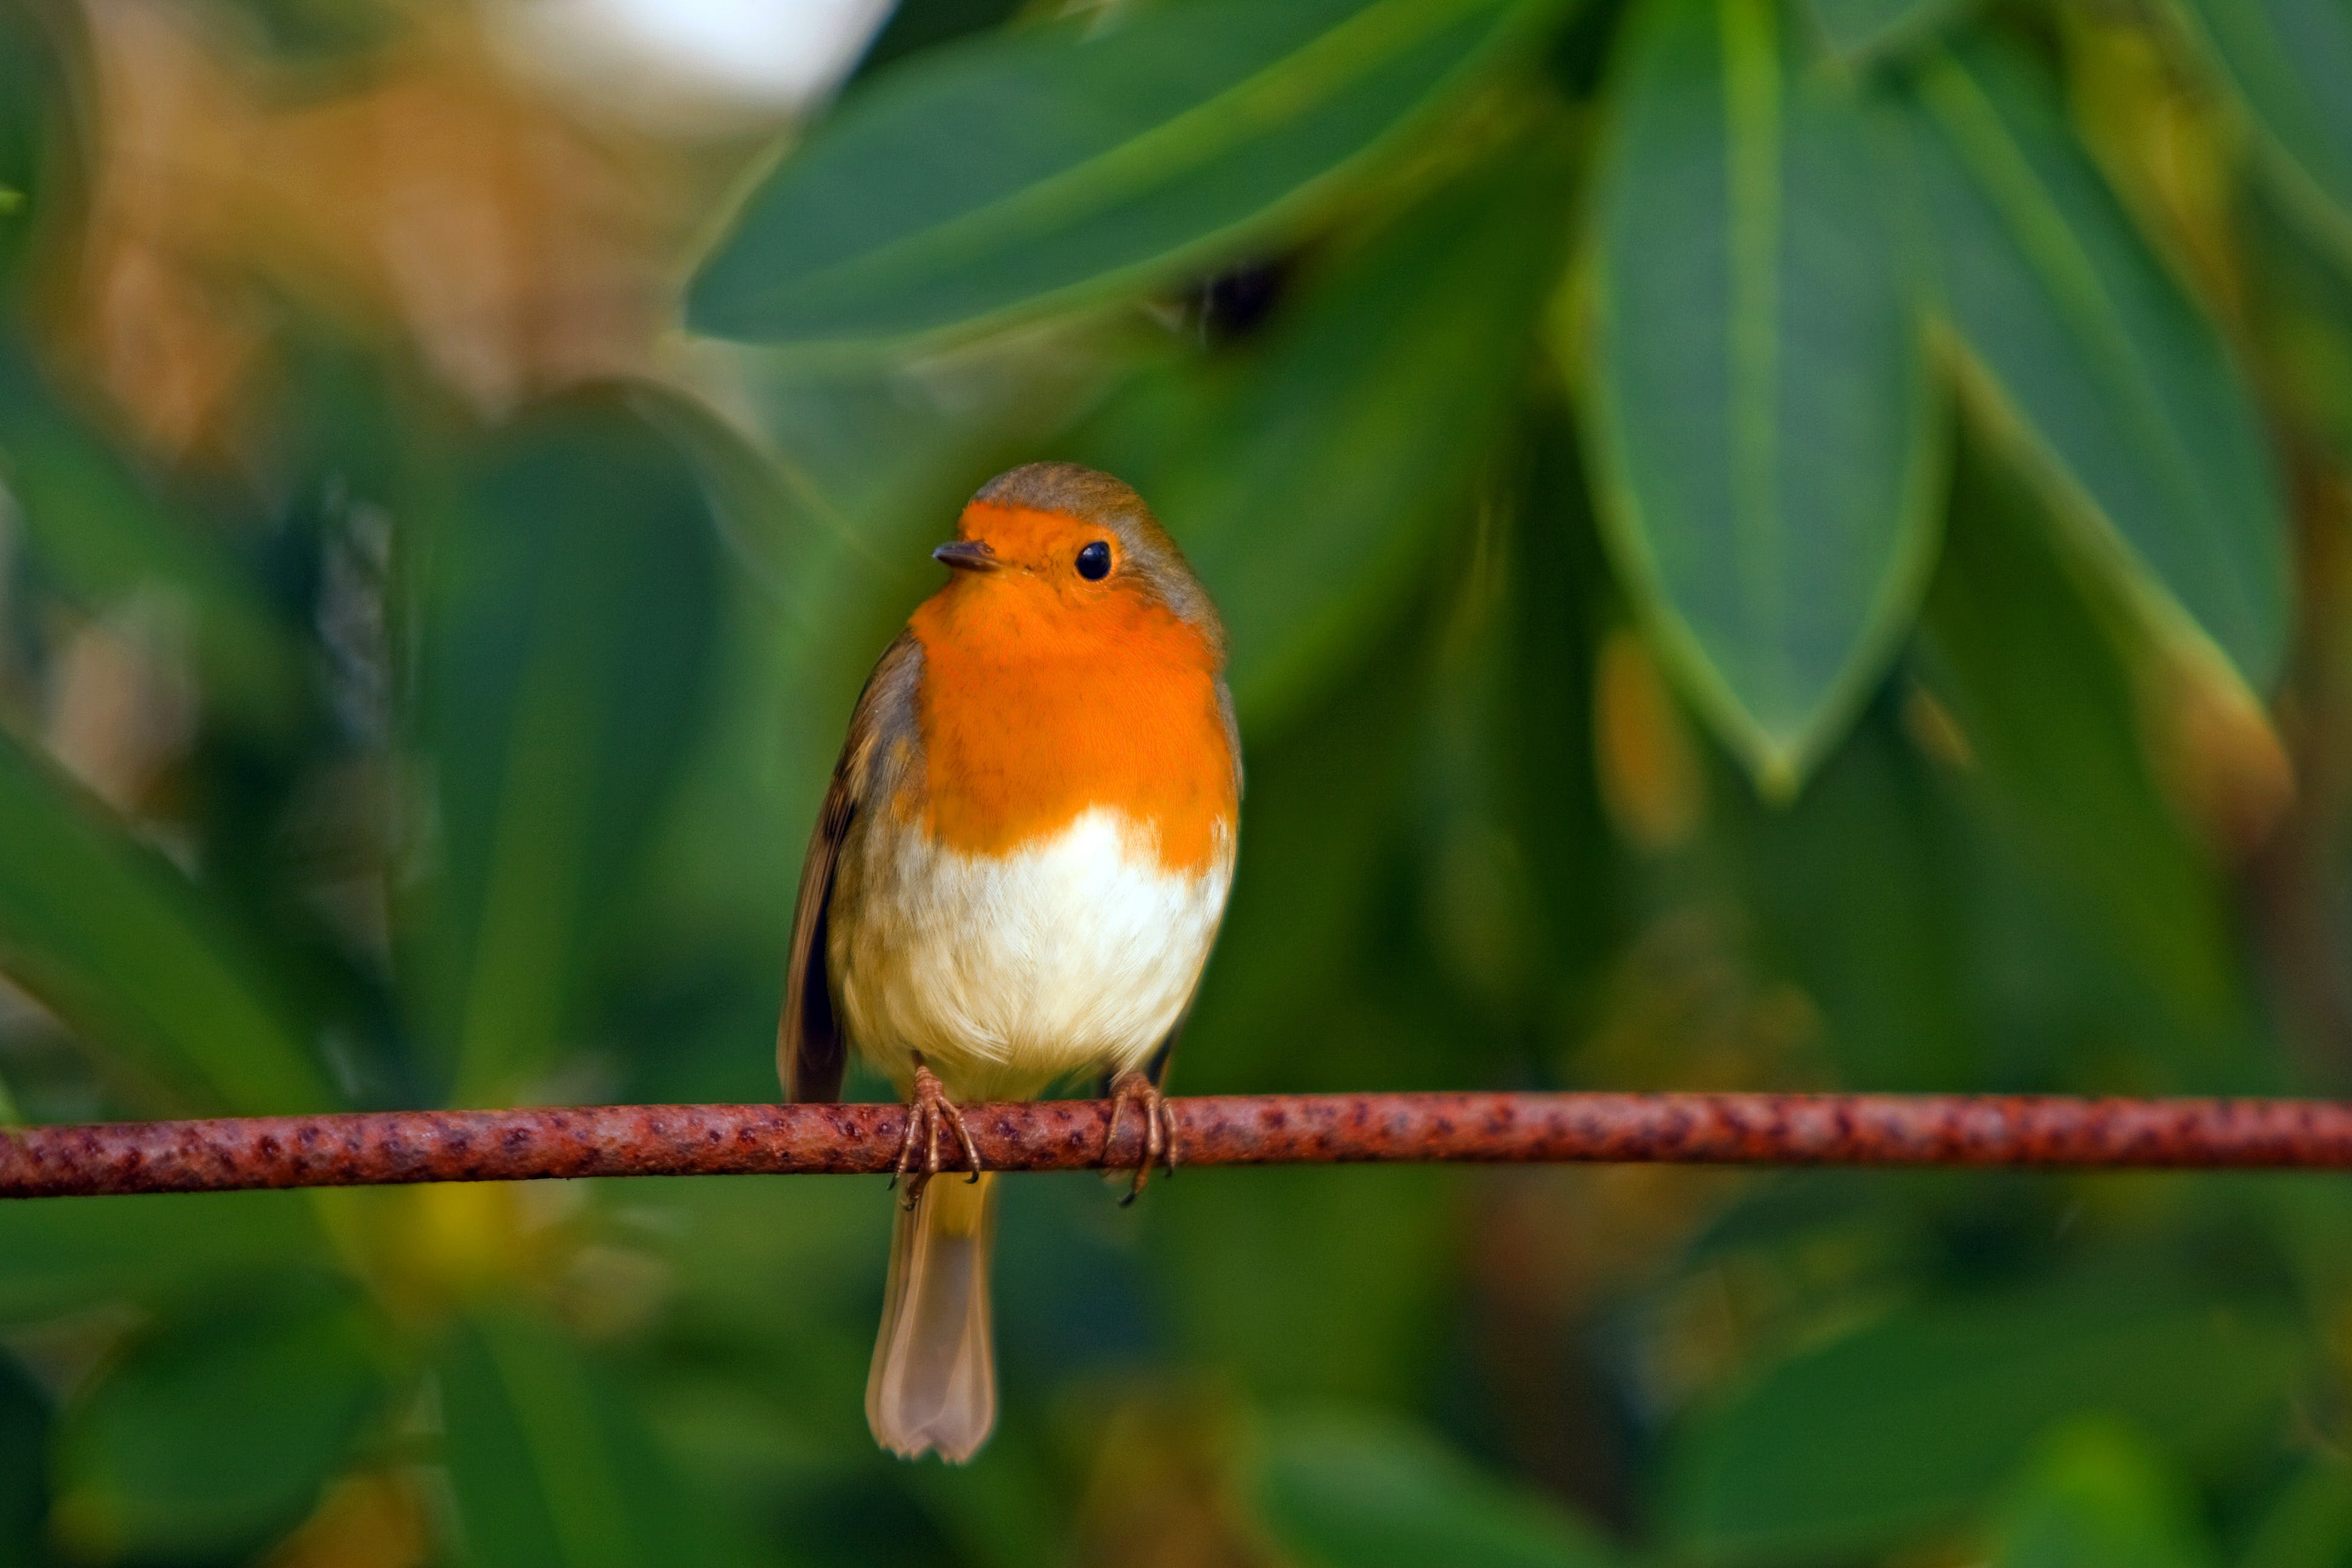 Orange White Brown Bird on Top of Red Branch